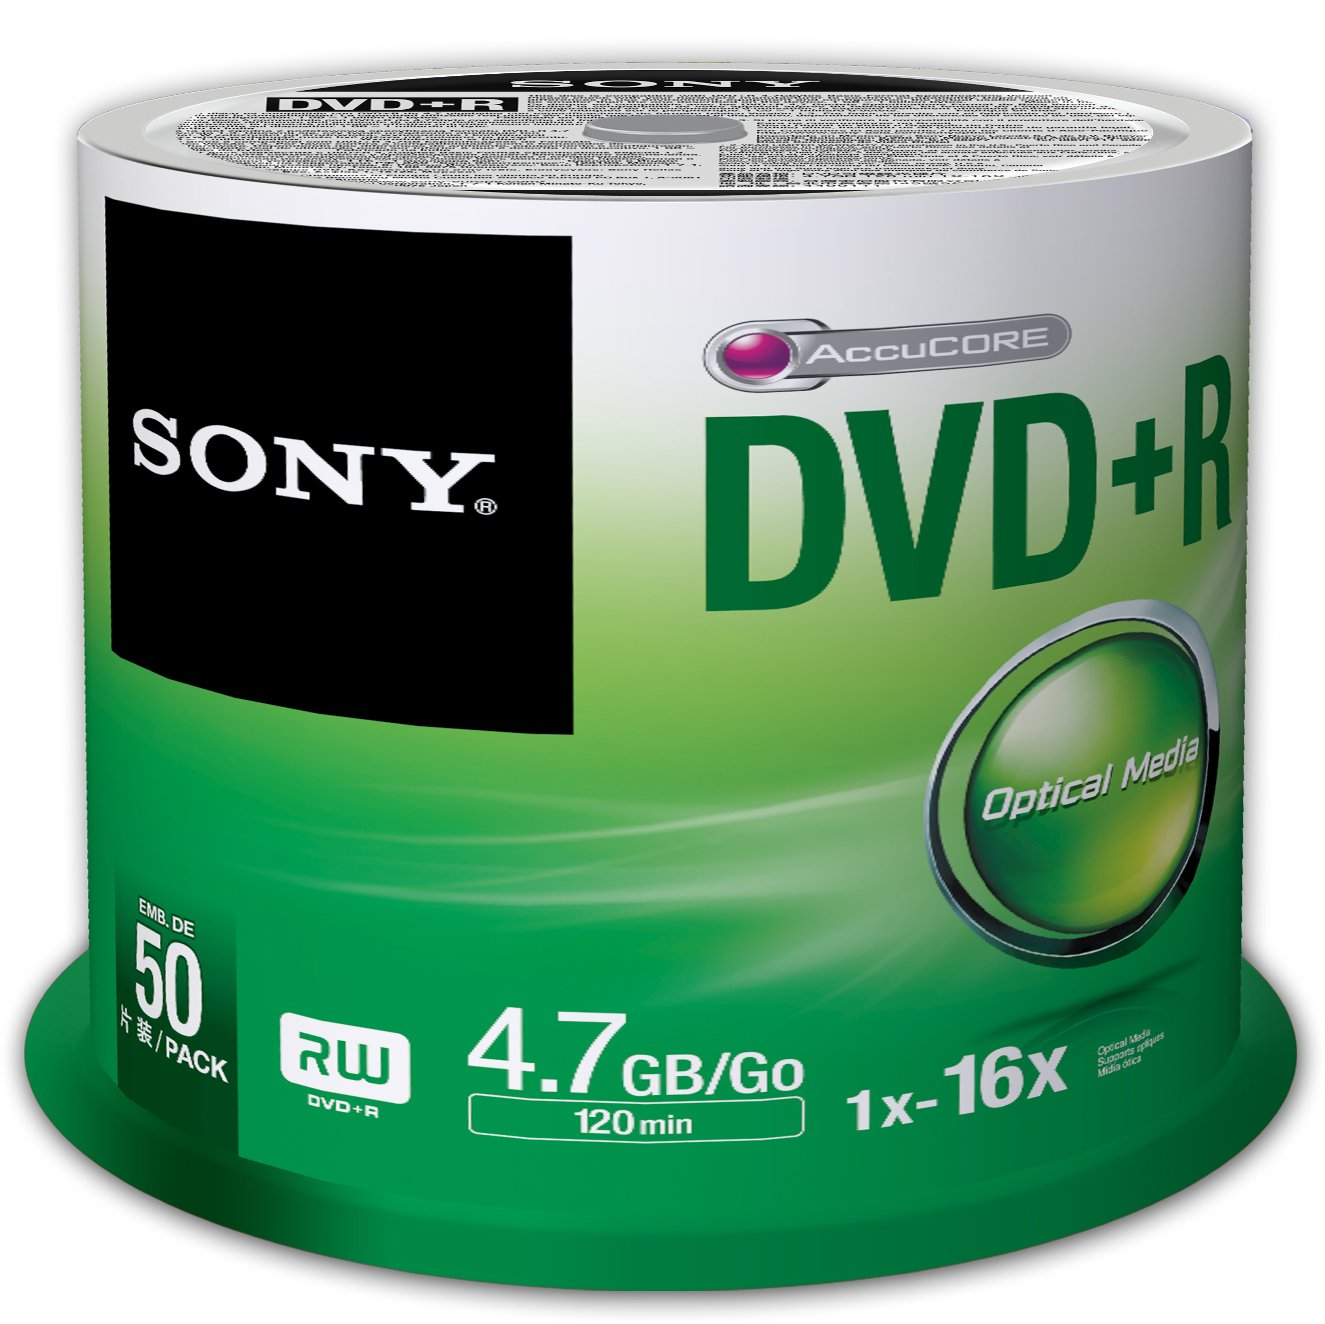 Verbatim dvd rw 4 7gb 4x with branded surface 30pk spindle 4 7gb - Sony 50dpr47sp 16x Dvd R 4 7gb Recordable Dvd Media 50 Pack Spindle